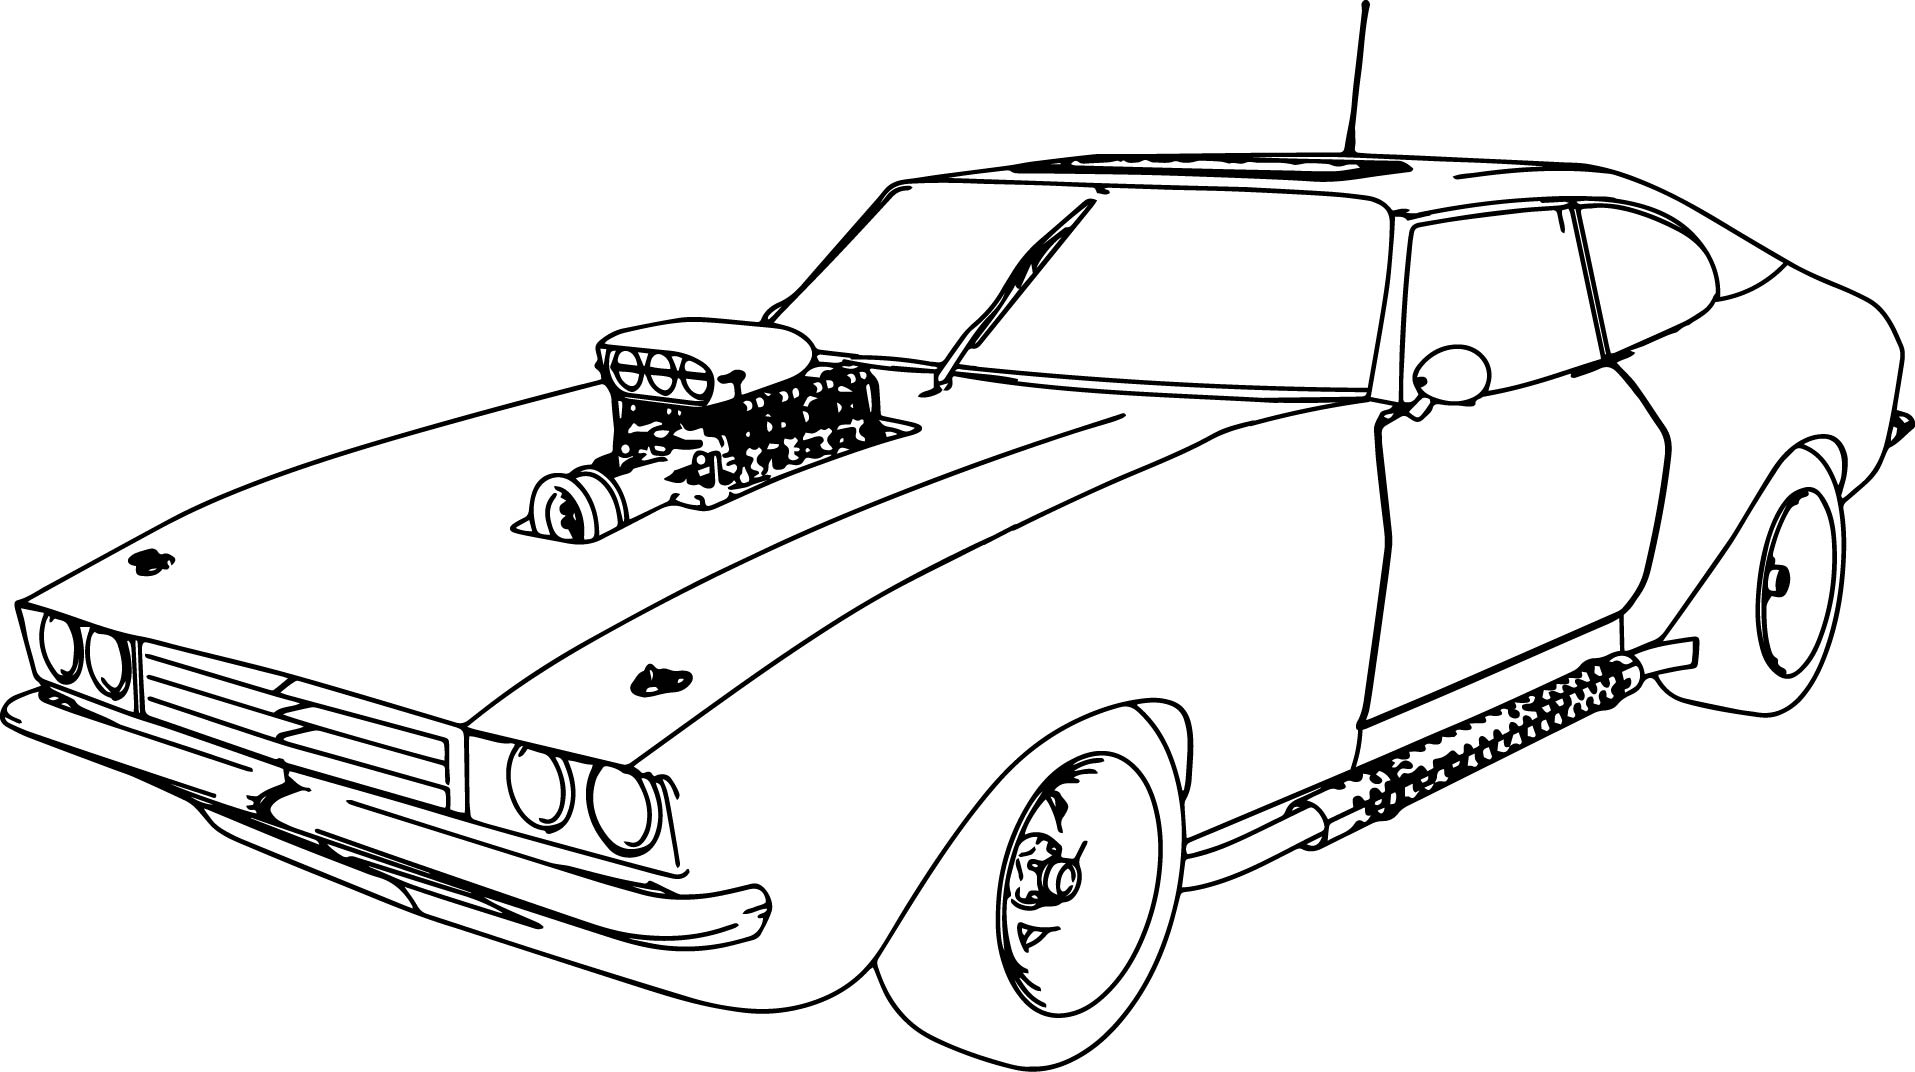 Super Car ford Mustang Coloring Page Inspirational Mustang Download Printable Of Mustang Coloring Pages Beautiful ford Mustang Gt Car Coloring Pages Download